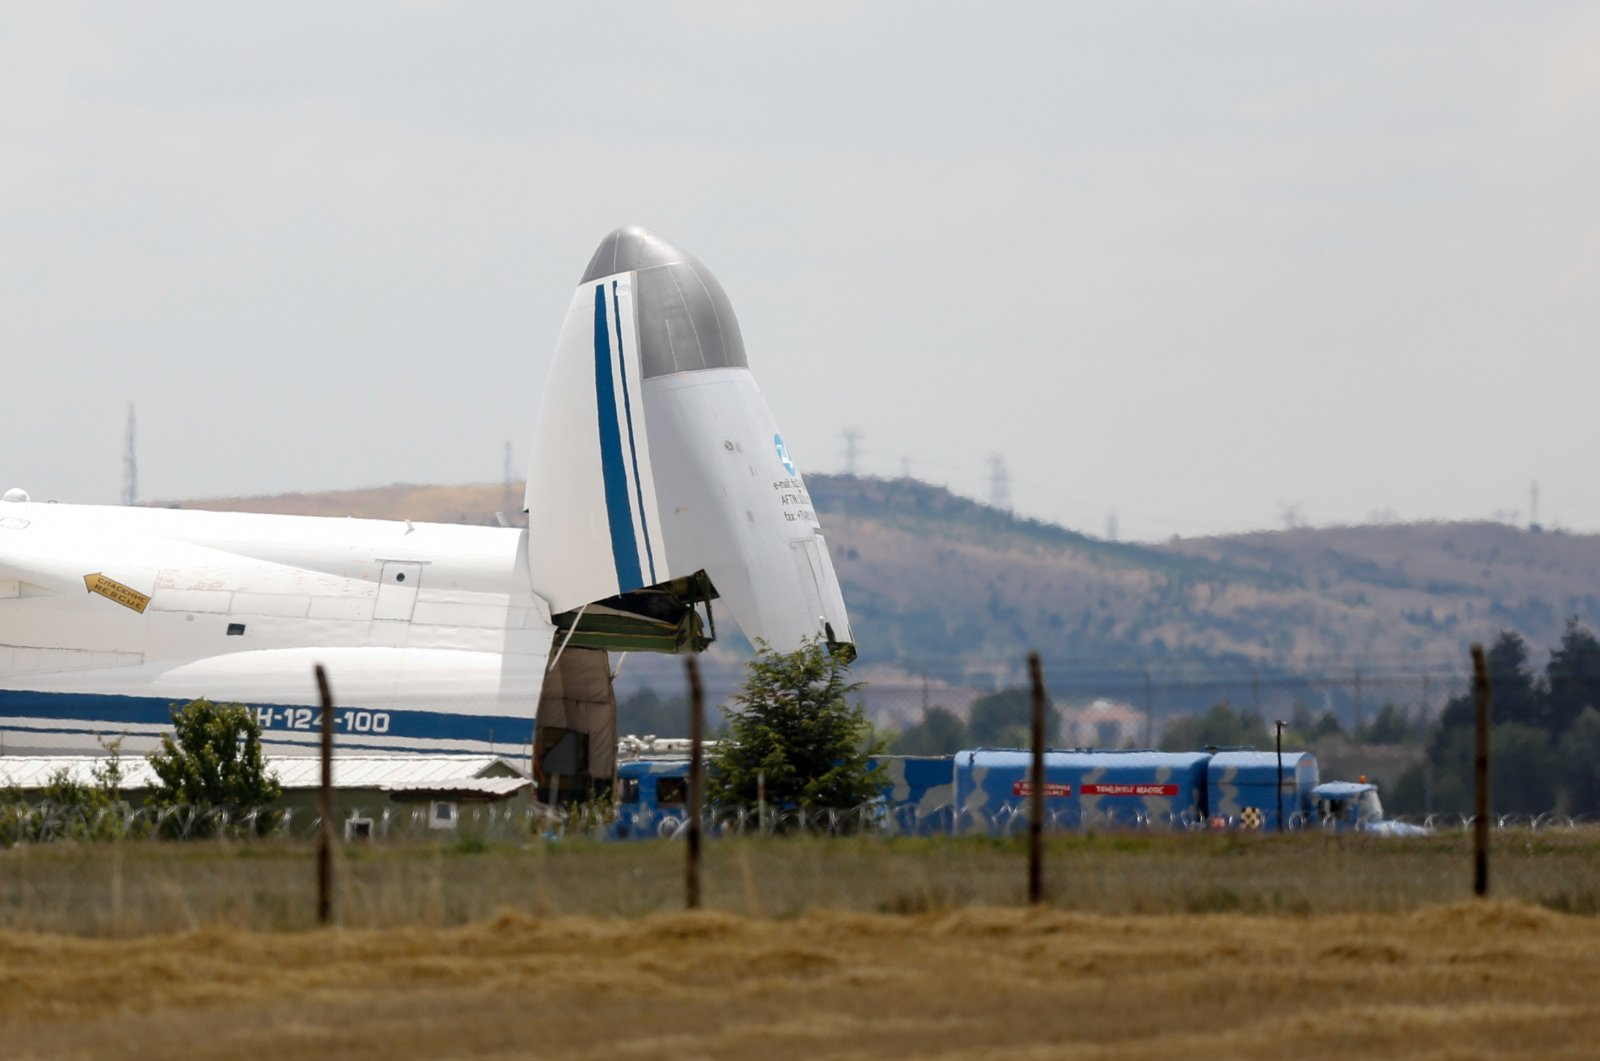 Cargo is unloaded from a Russian cargo plane transporting parts for the S-400 defense system from Russia, after it landed at Mürted Airfield, Ankara, Turkey, July 12, 2019. (Photo by Getty Images)